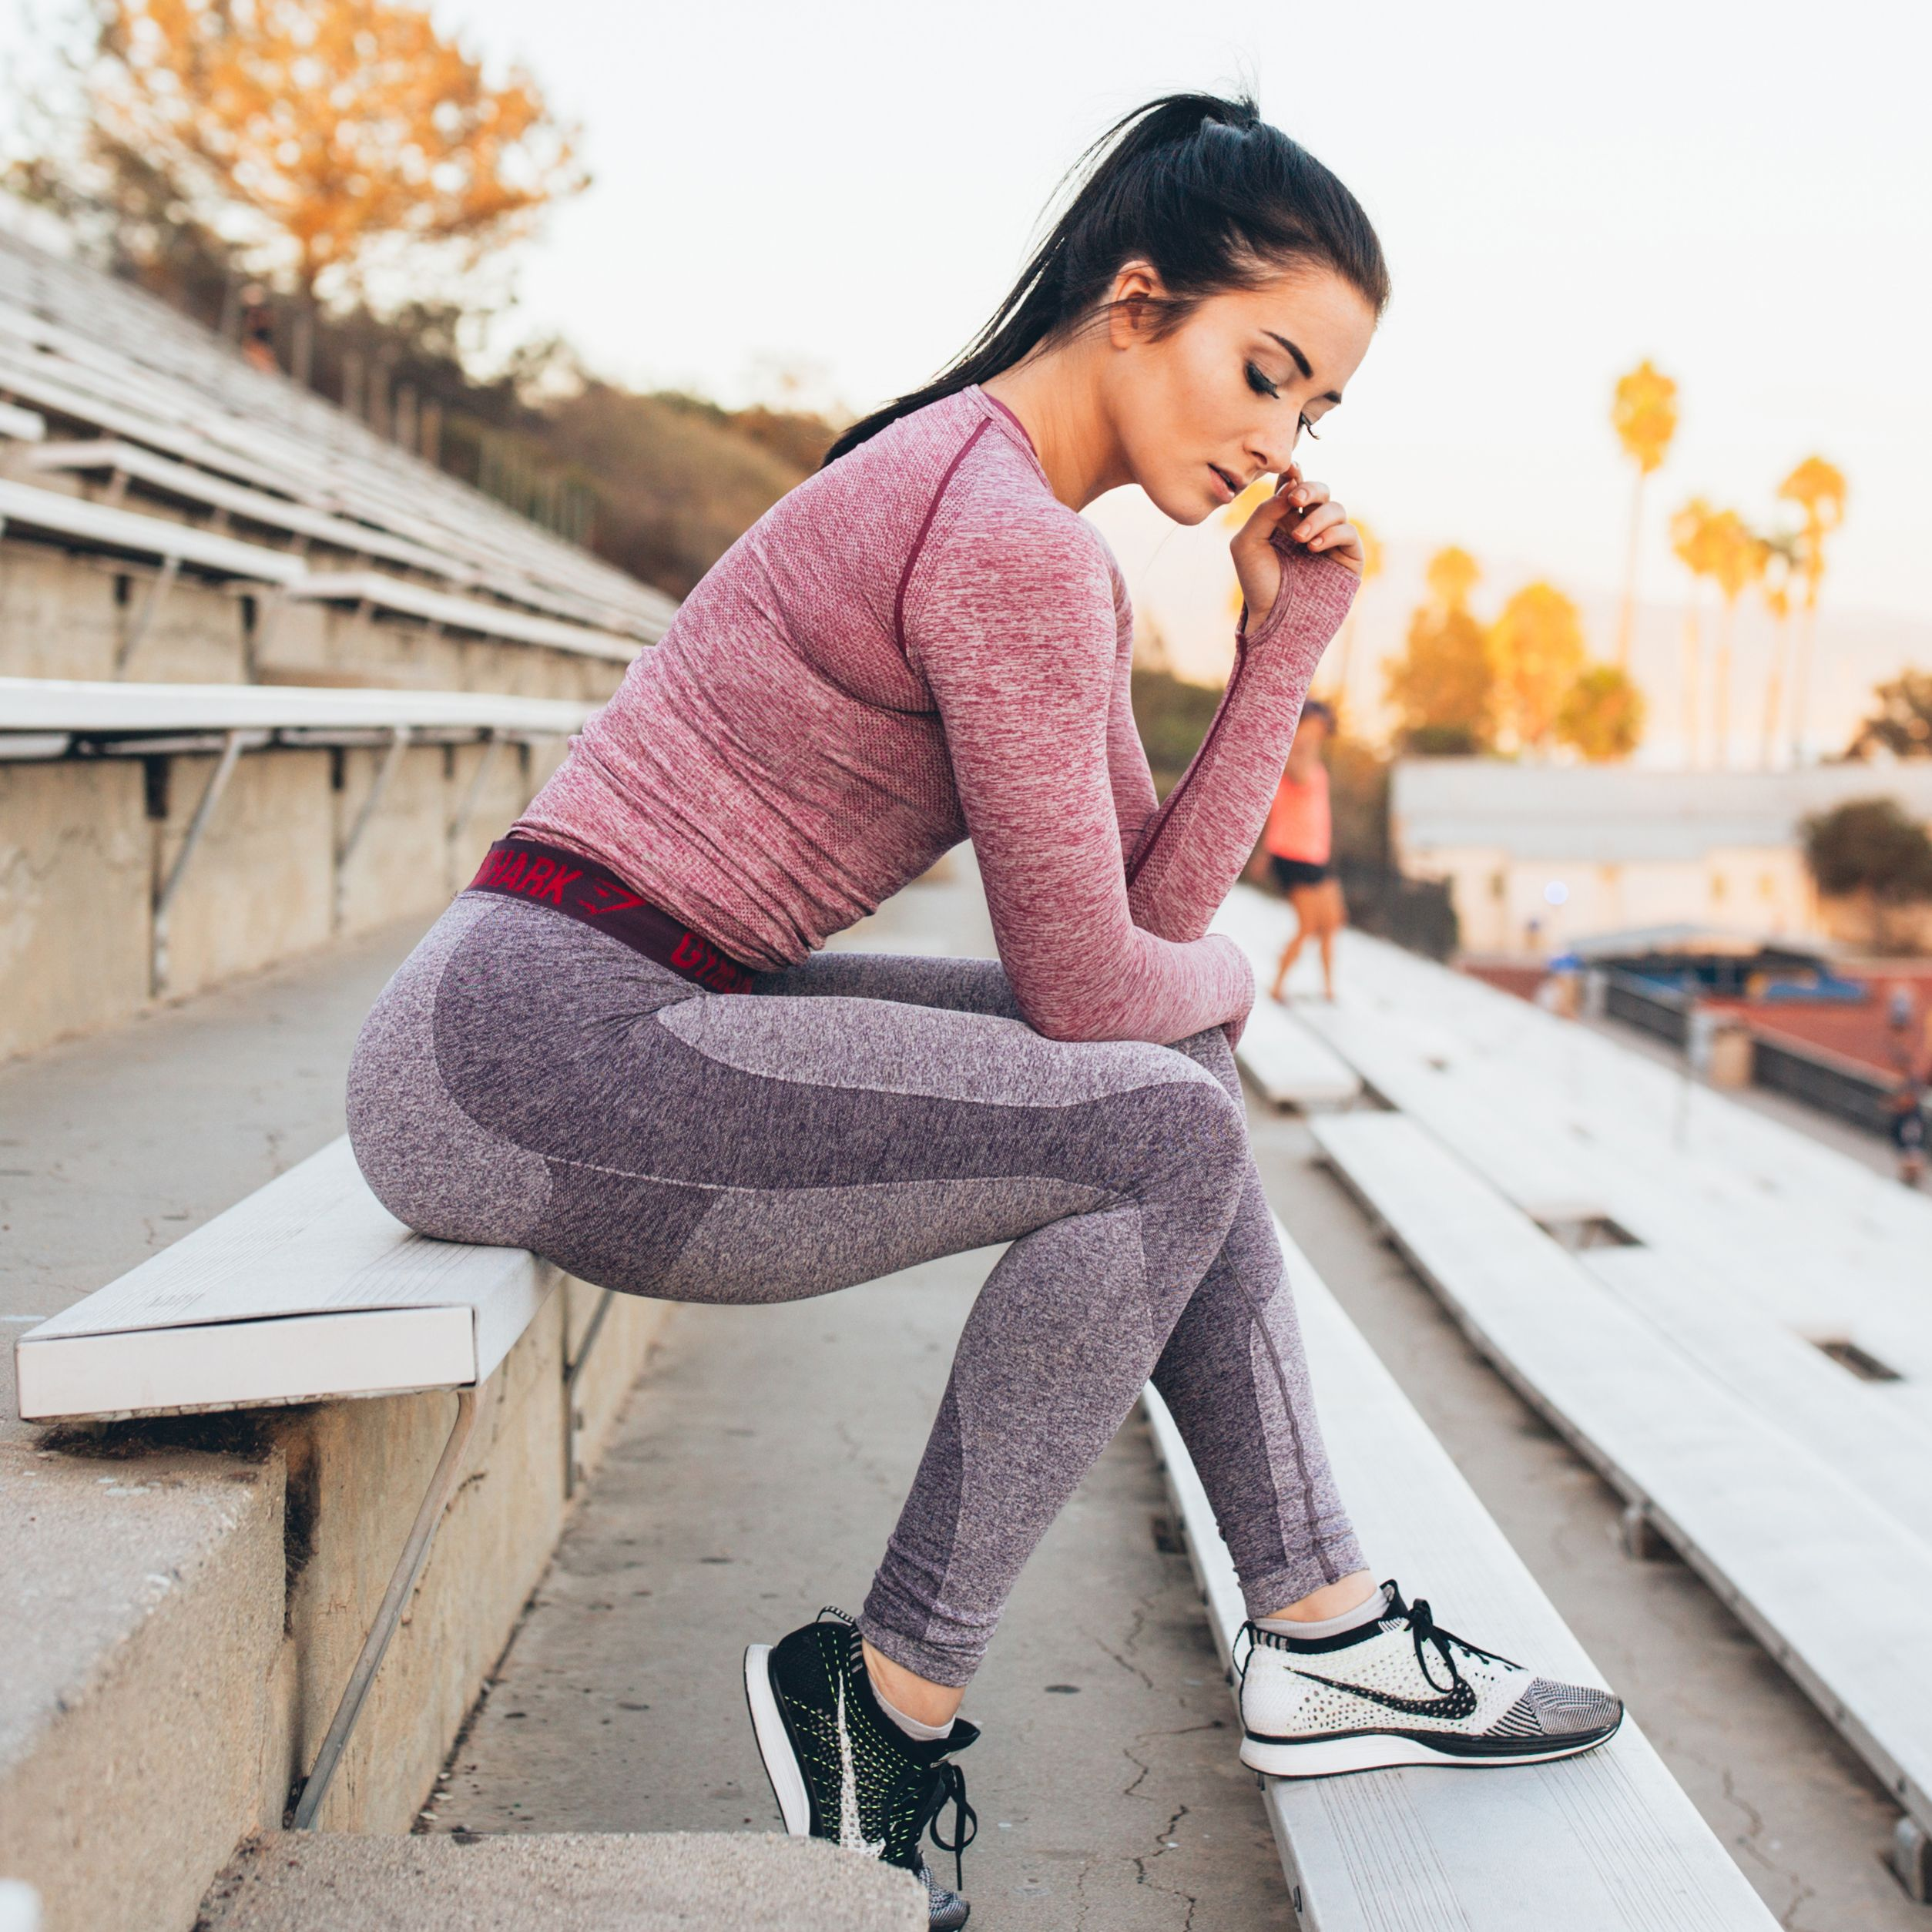 83ffcd258f Ally Stone styling the Flex Leggings in Blackberry with Seamless Long  Sleeve Plum. Get the look at Gymshark.com